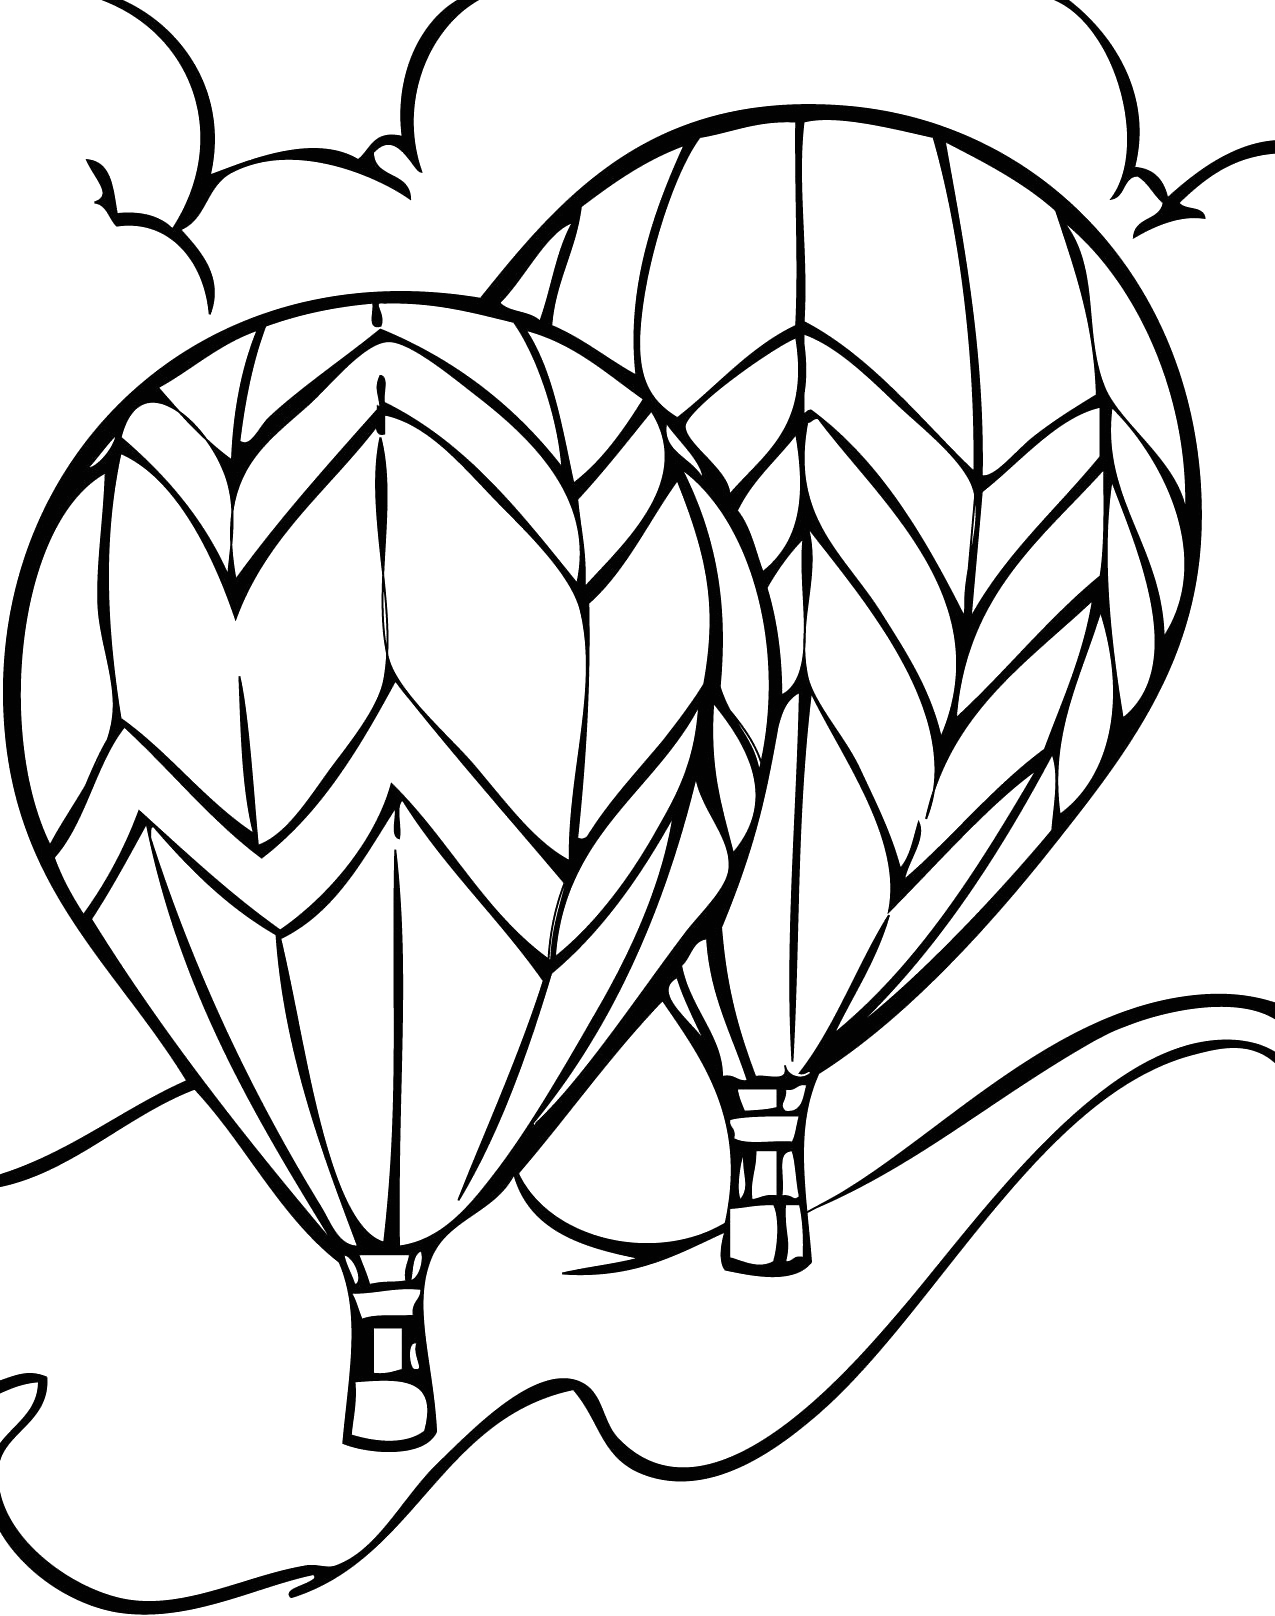 Free Large Print Coloring Pages for Seniors Coloring Pages for Elderly at Getdrawings